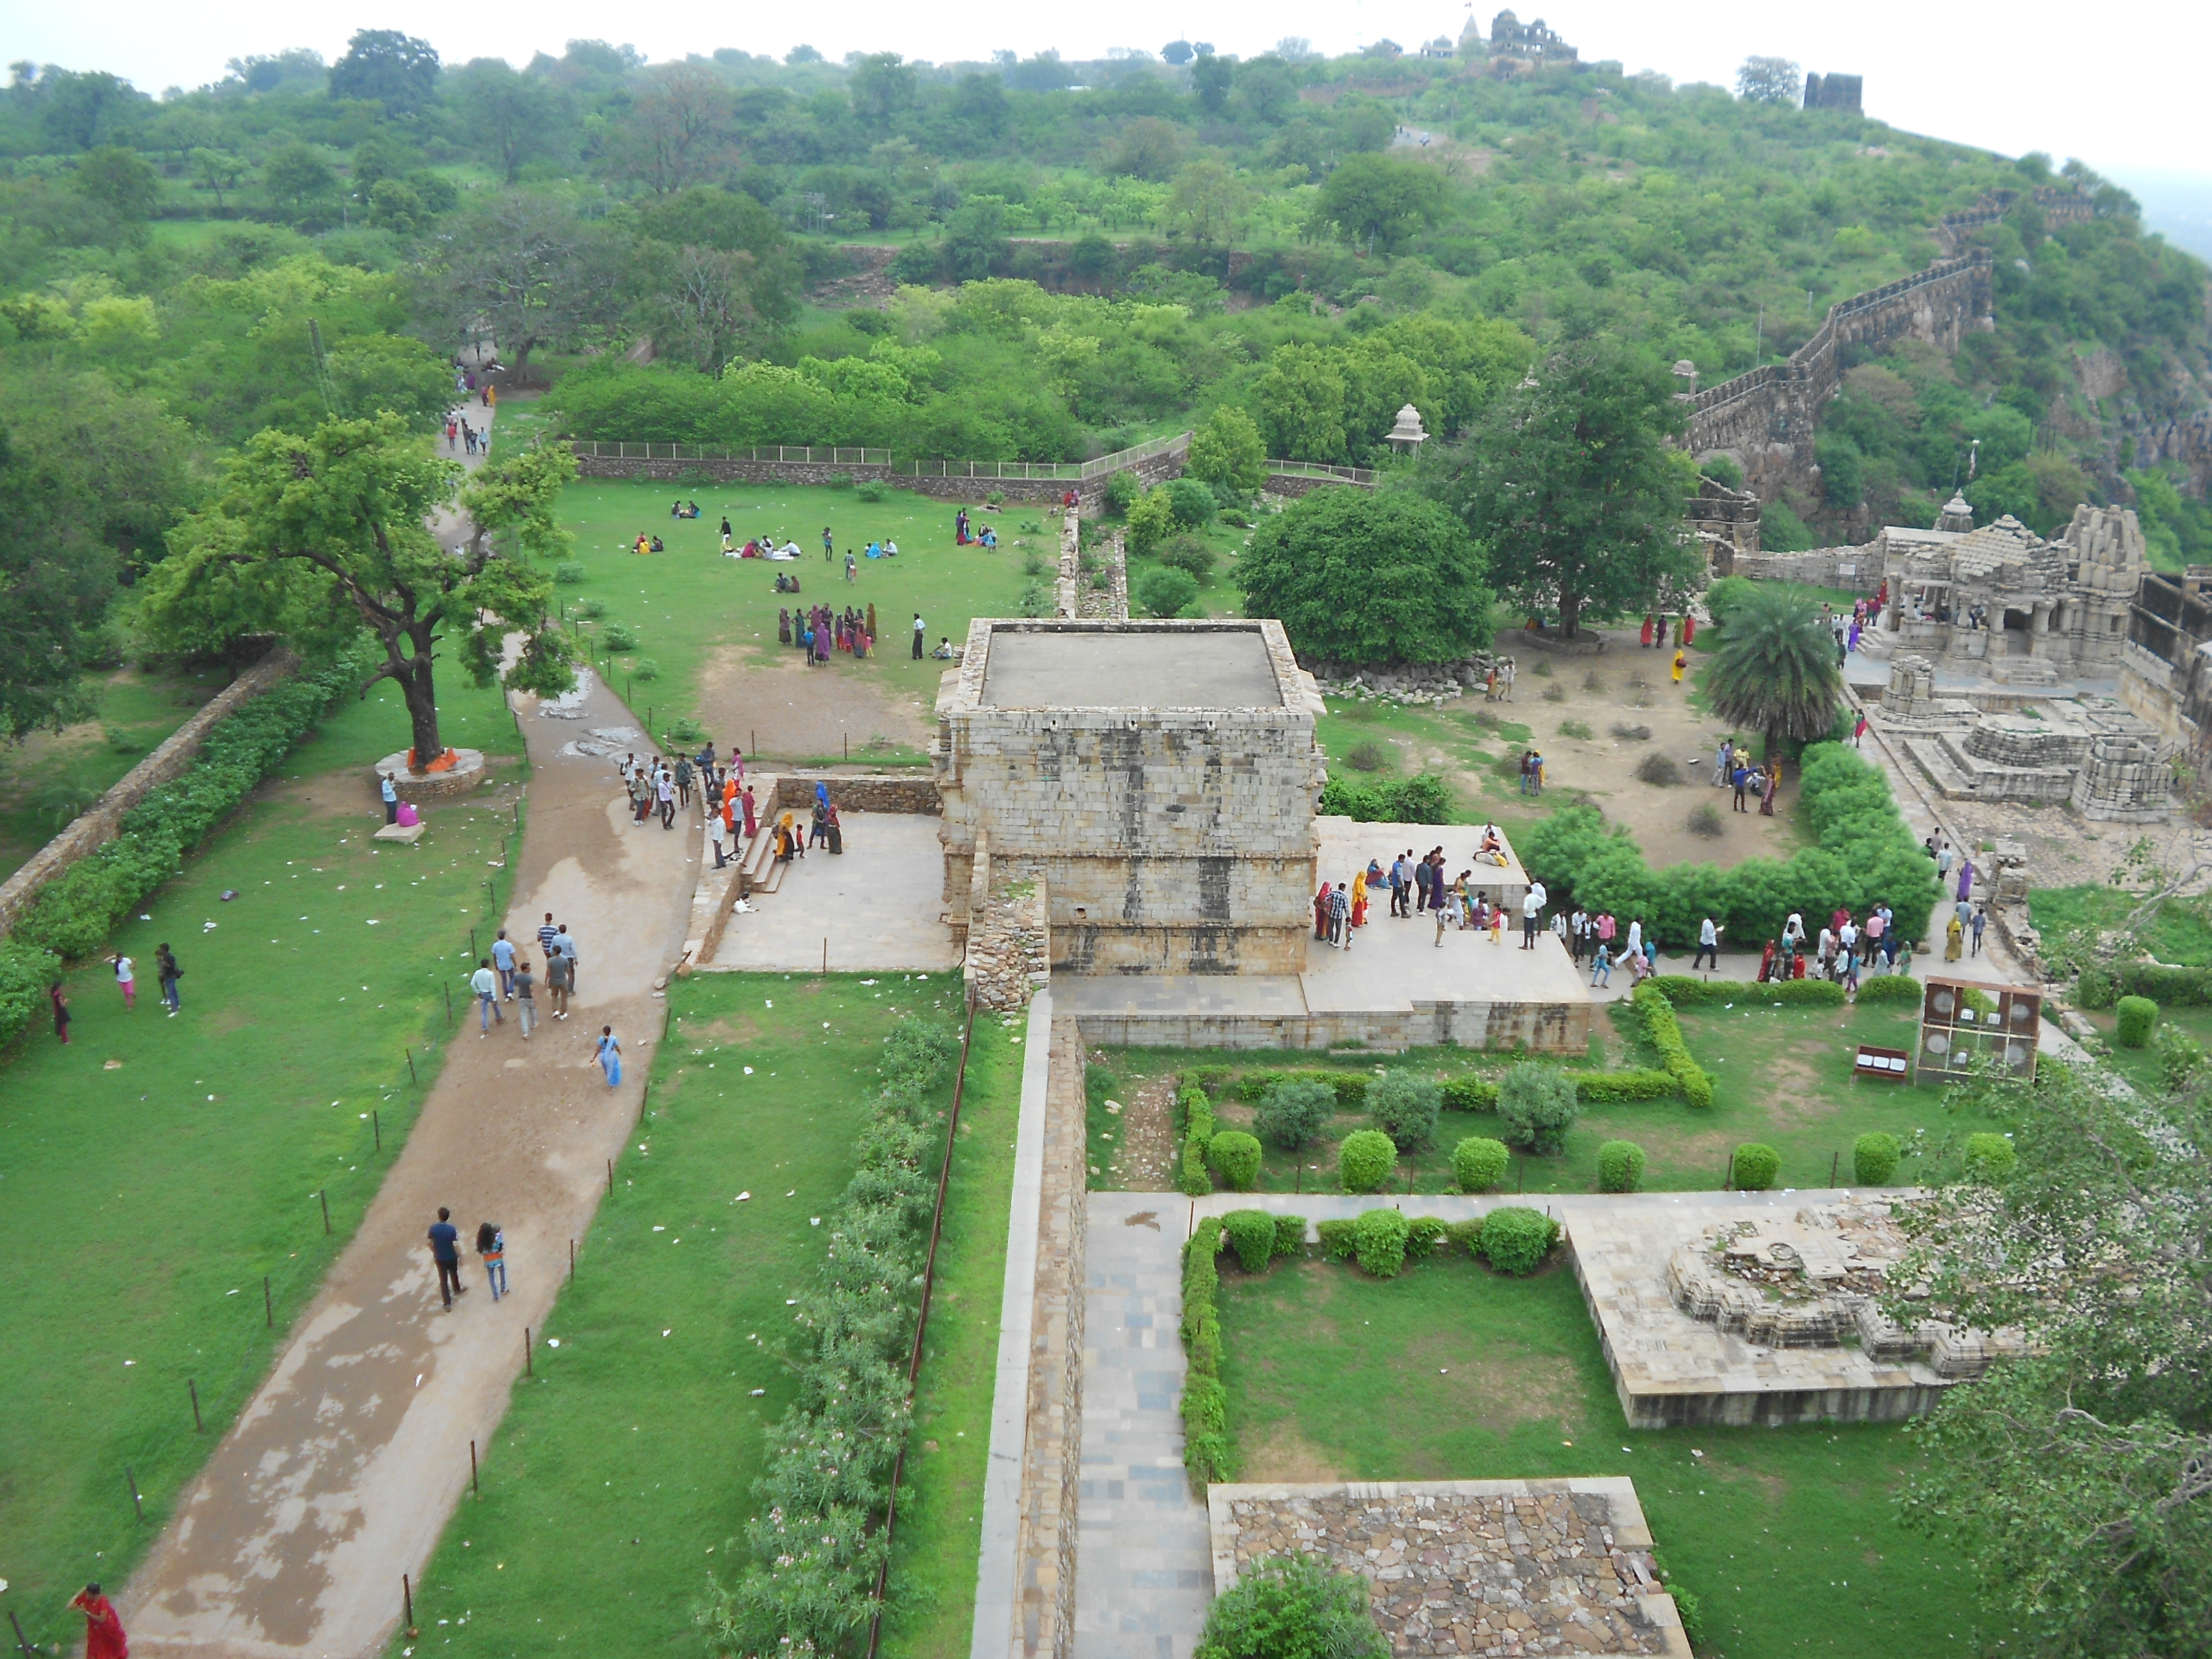 see: Chittorgarh Fort, India